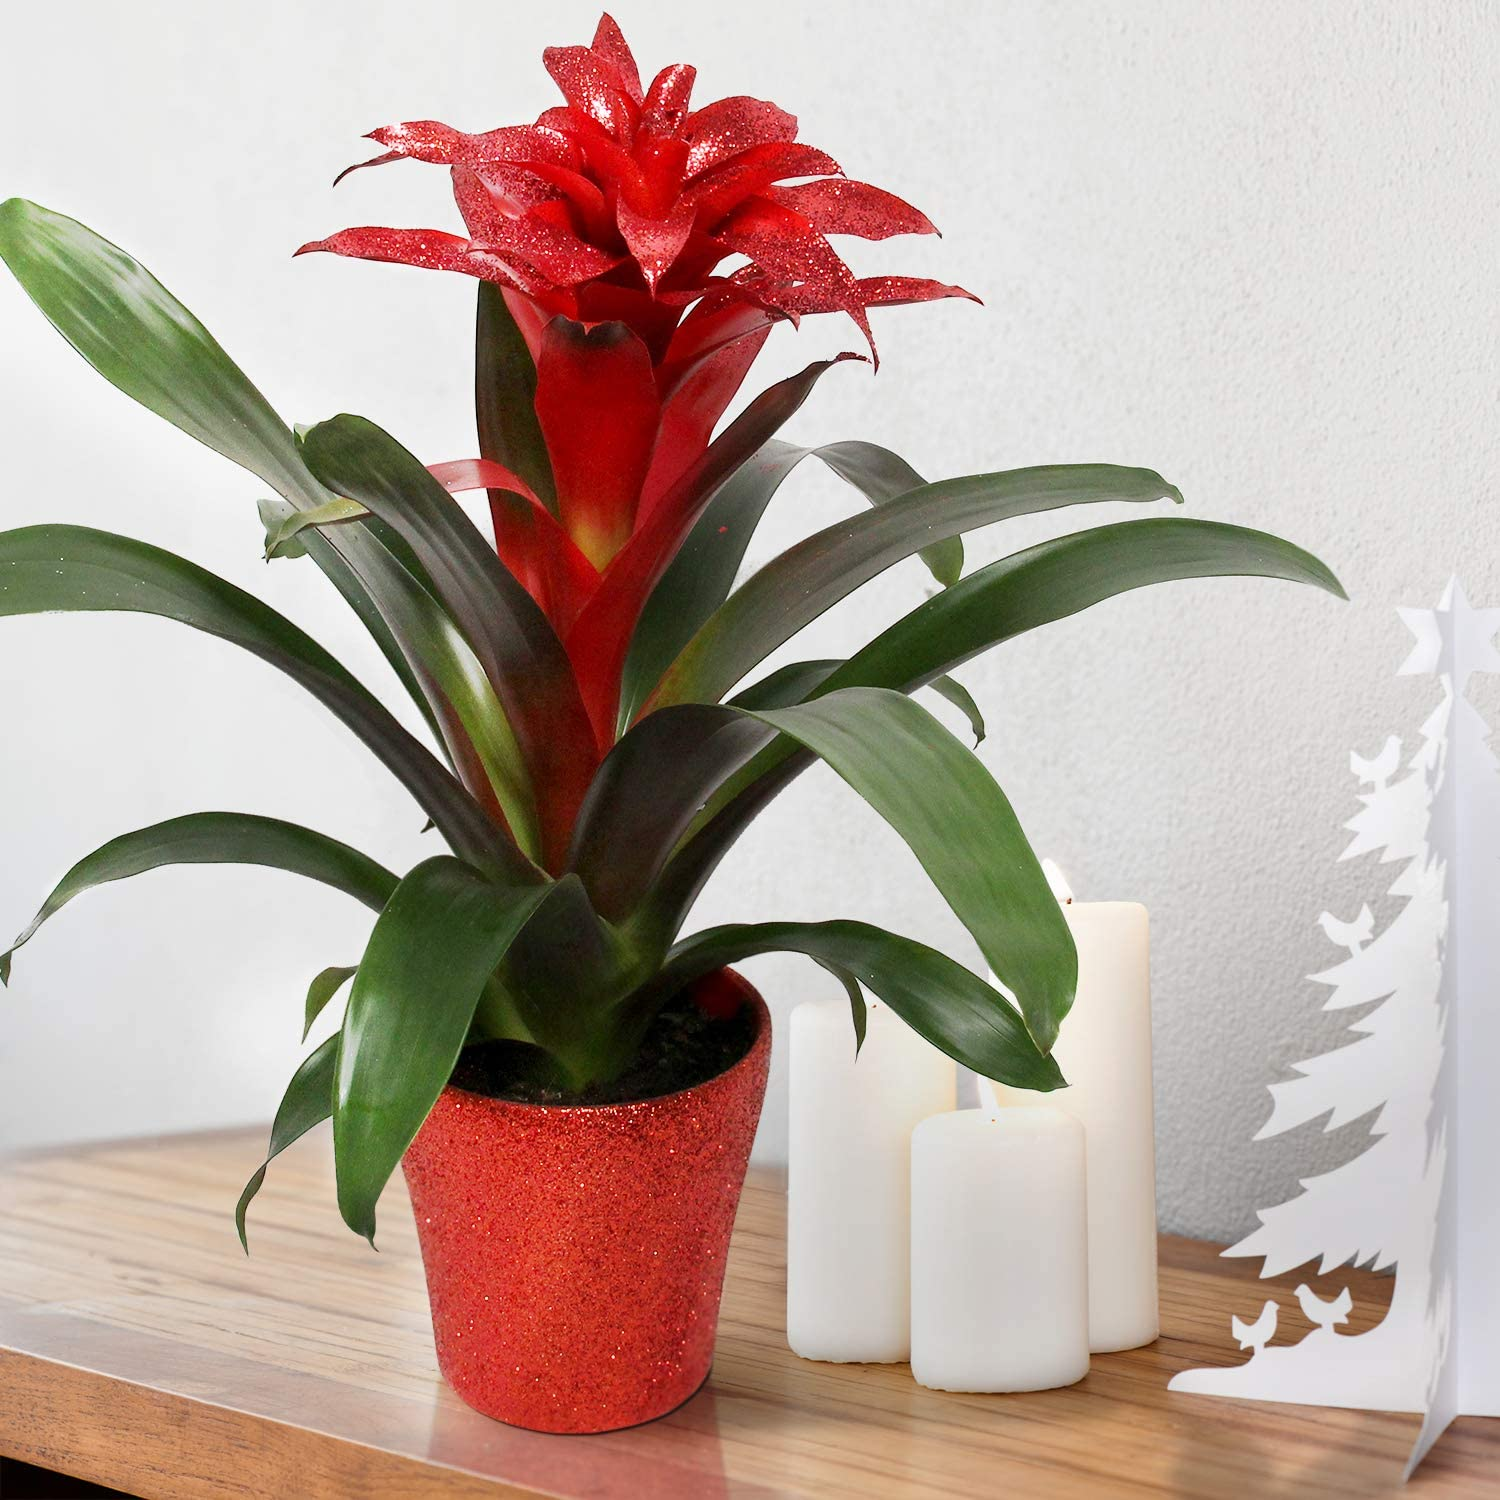 Breasy Indoor Plant Plant Height 40 cm Fresh from The Grower Bromeliad Vriesea Intenso Orange in Pot Pot Diameter 12 cm Quality from Holland